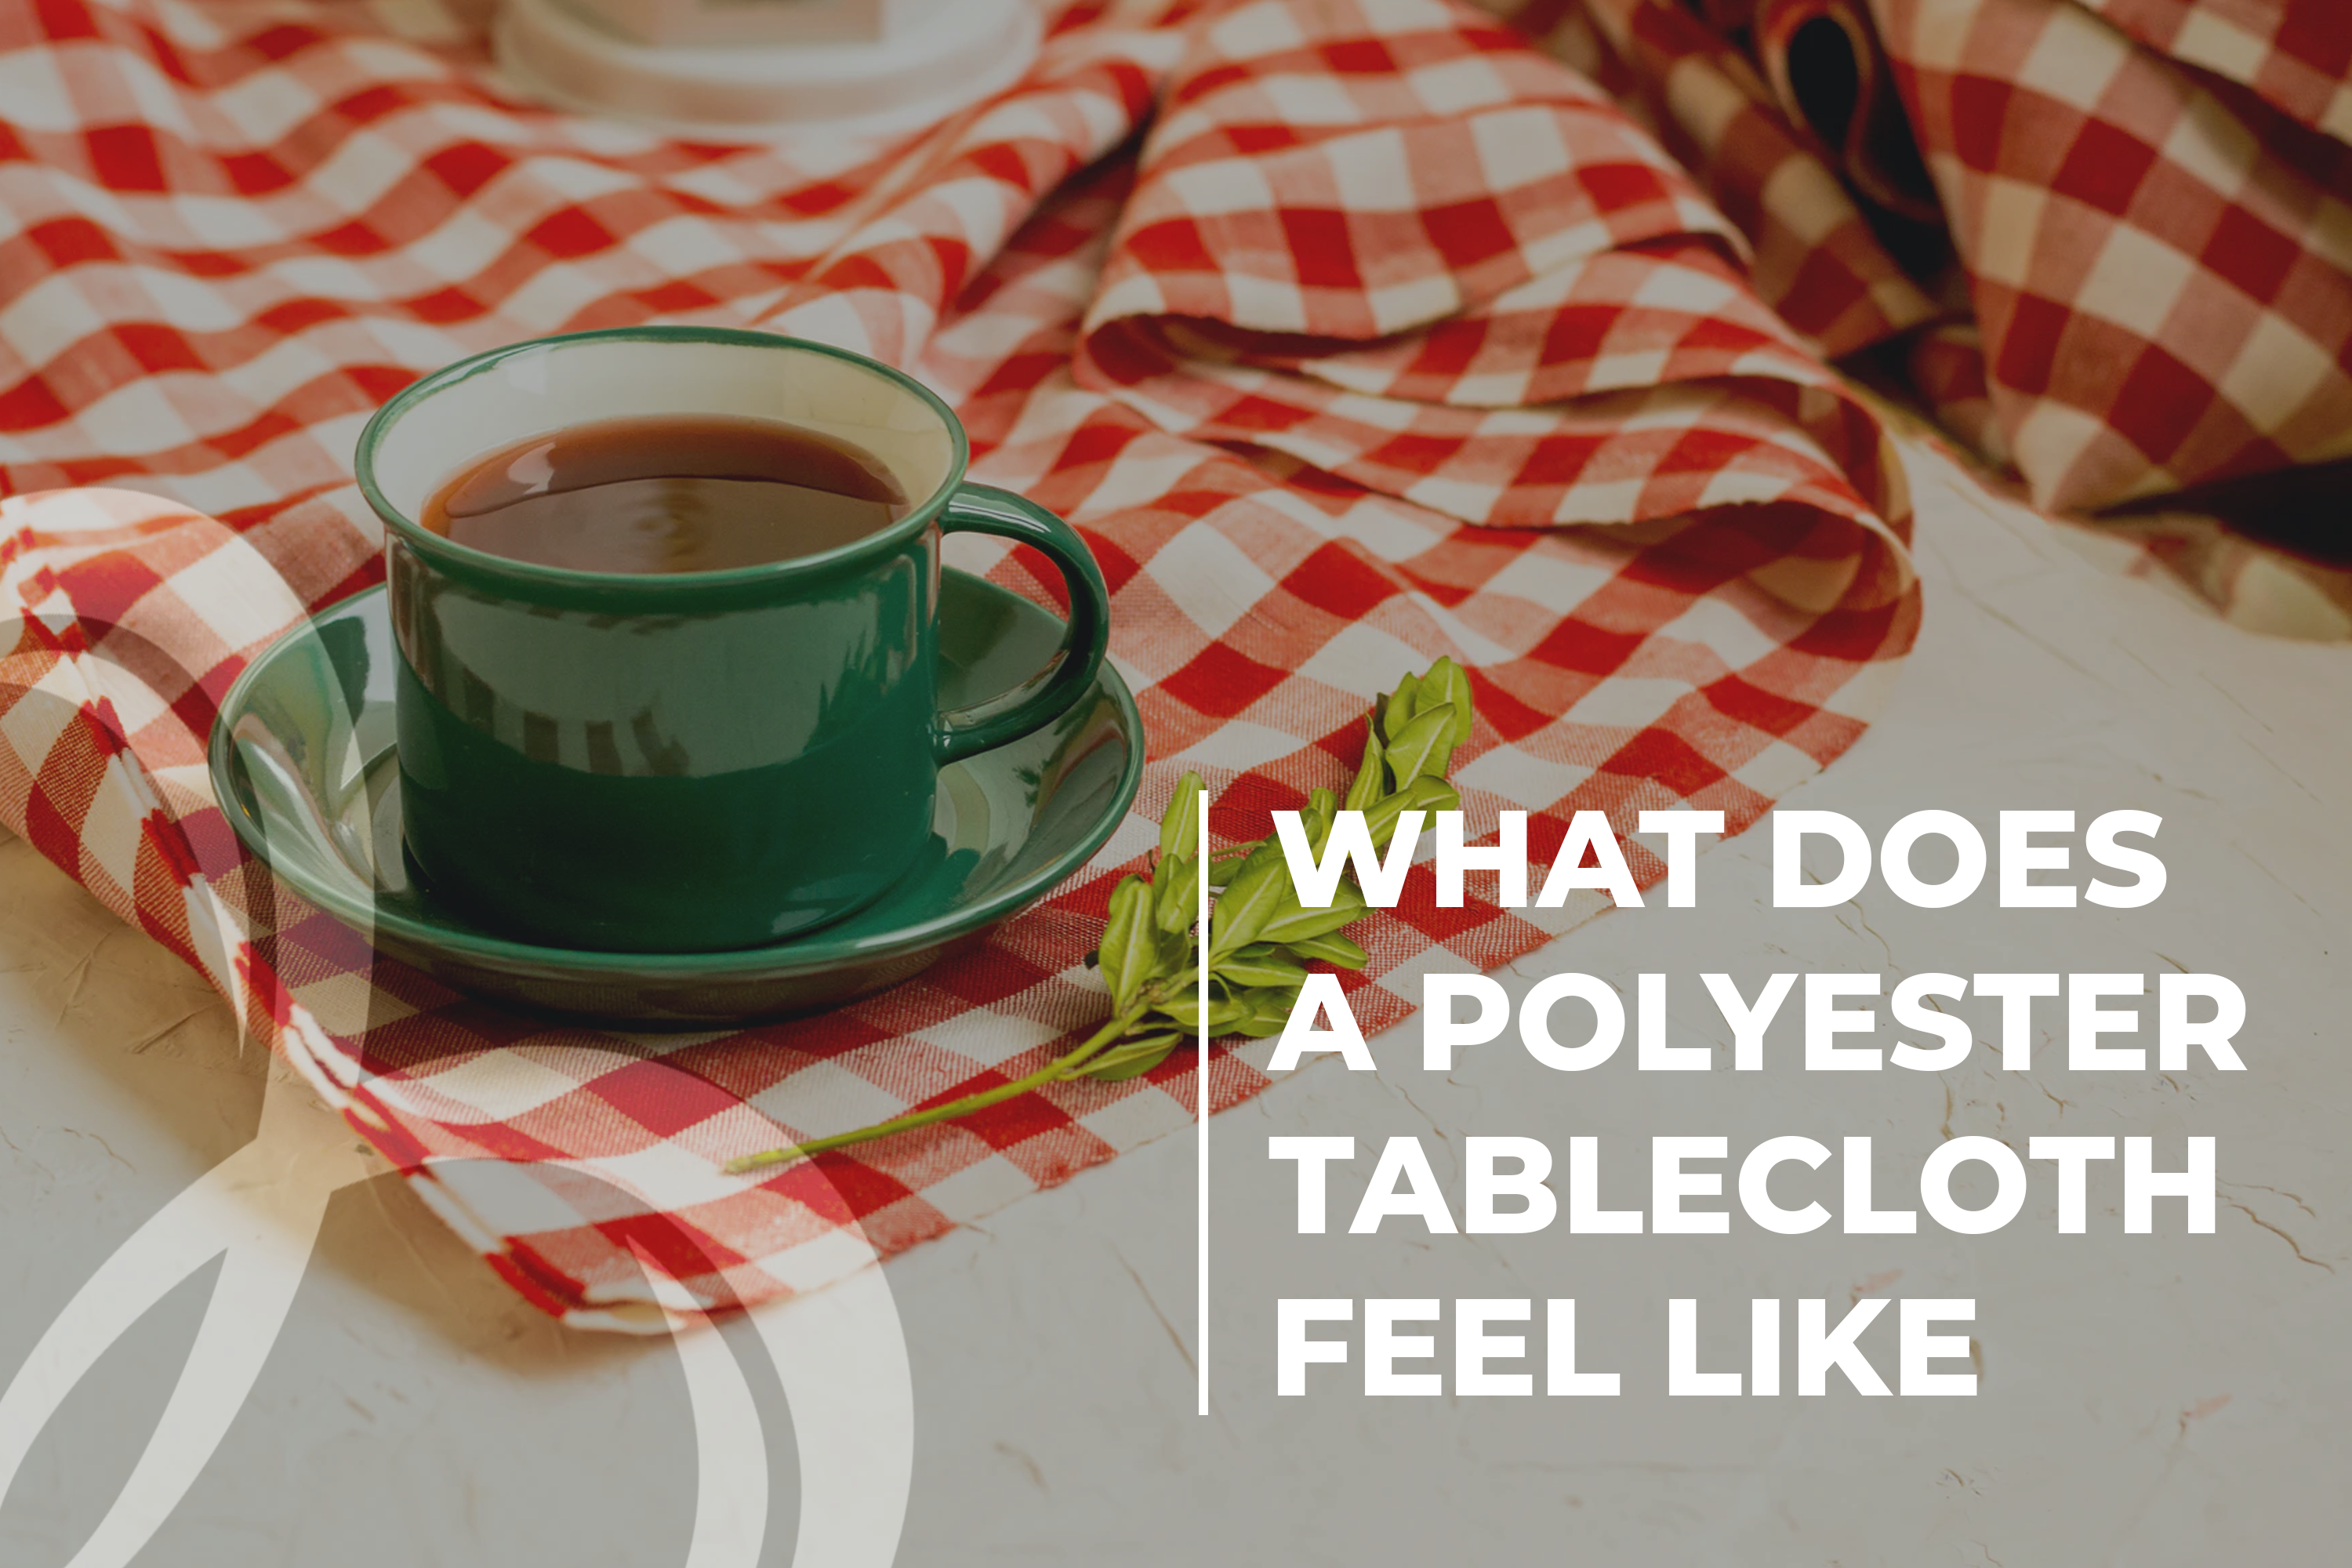 What Does a Polyester Tablecloth Feel Like